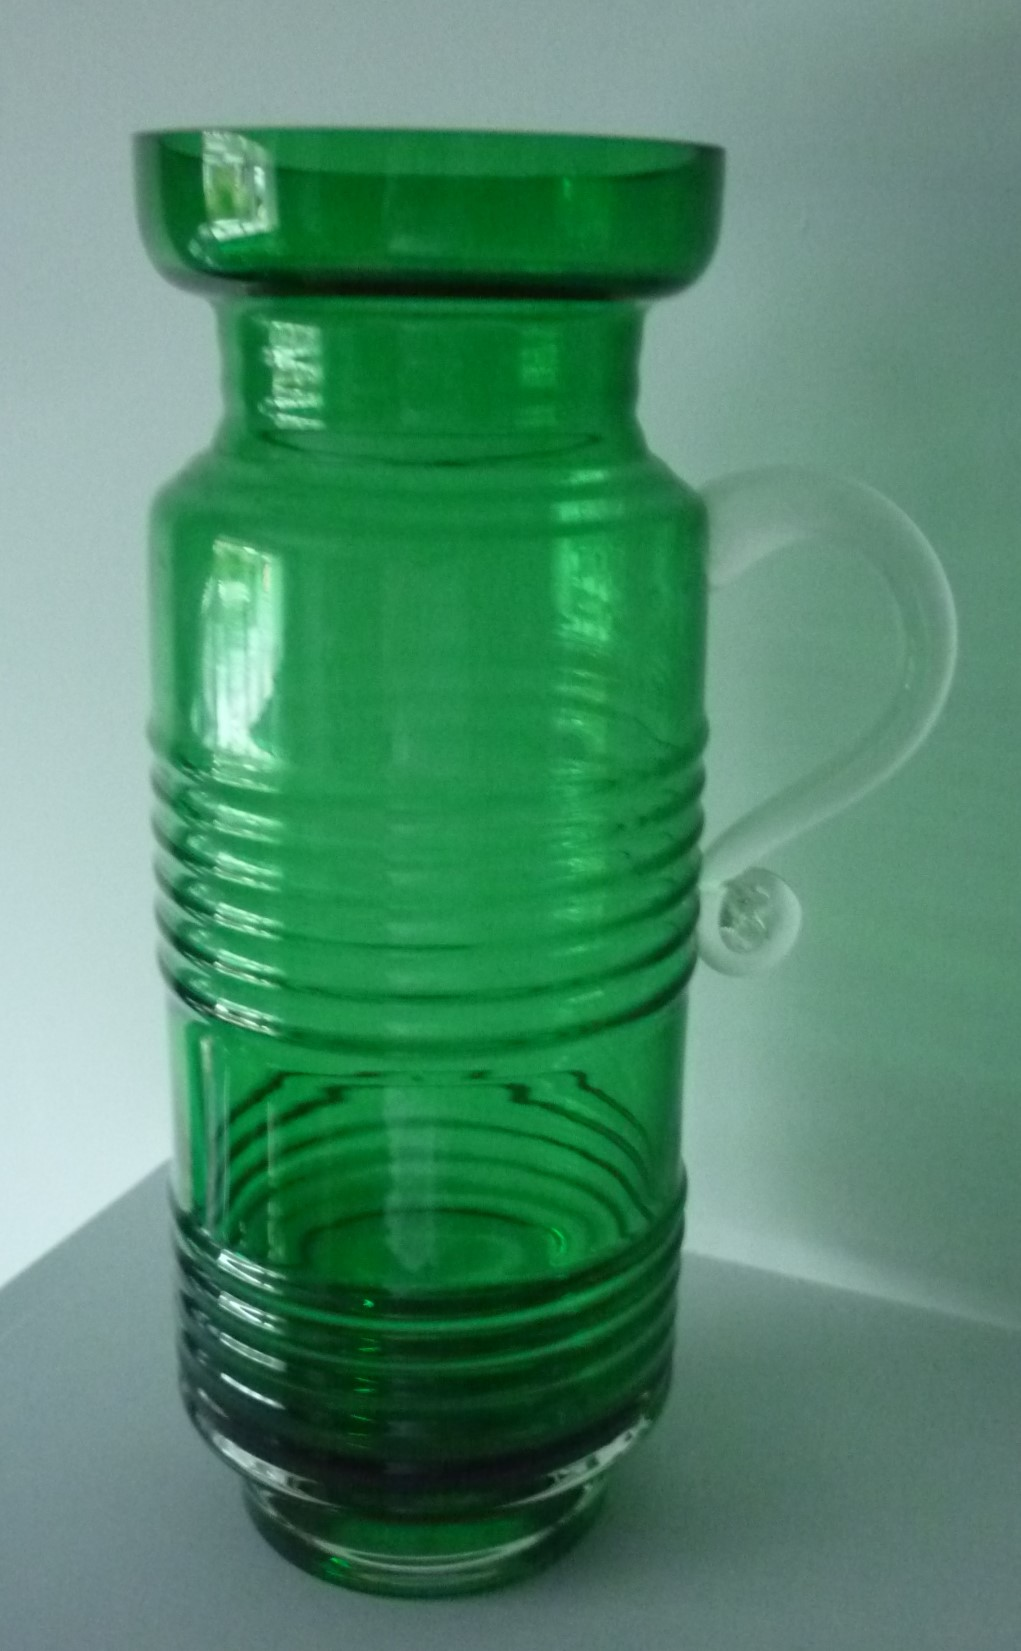 green and clear cased glass Jug designed by Tamara Aladin for Riihimaki of Finland in the 1970's.